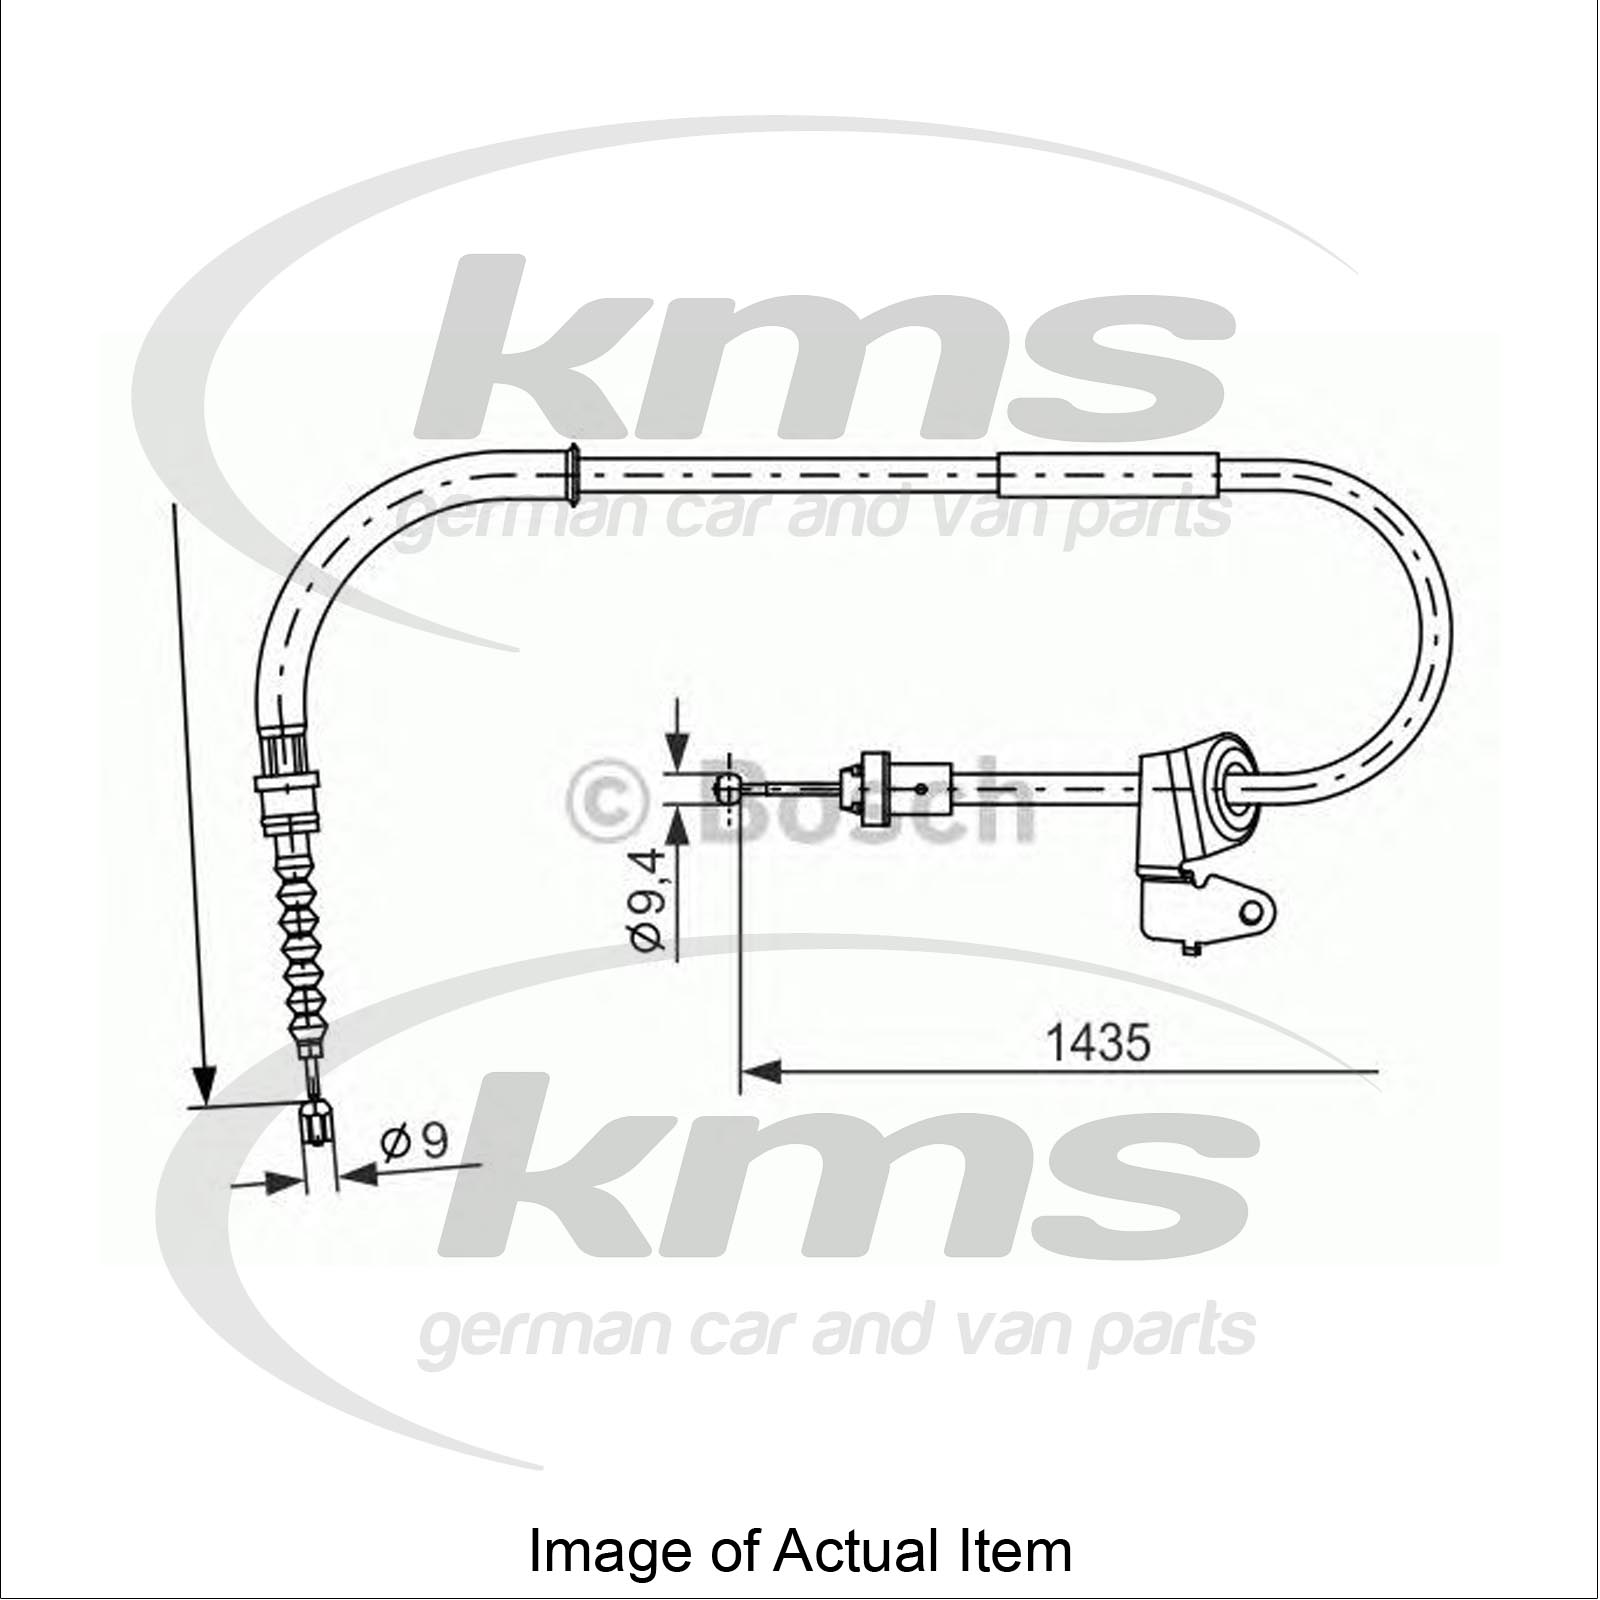 Mini Cooper S Fuse Diagram Daily Update Wiring 2004 Box 2005 Scion Xb Power Steering Belt Layout